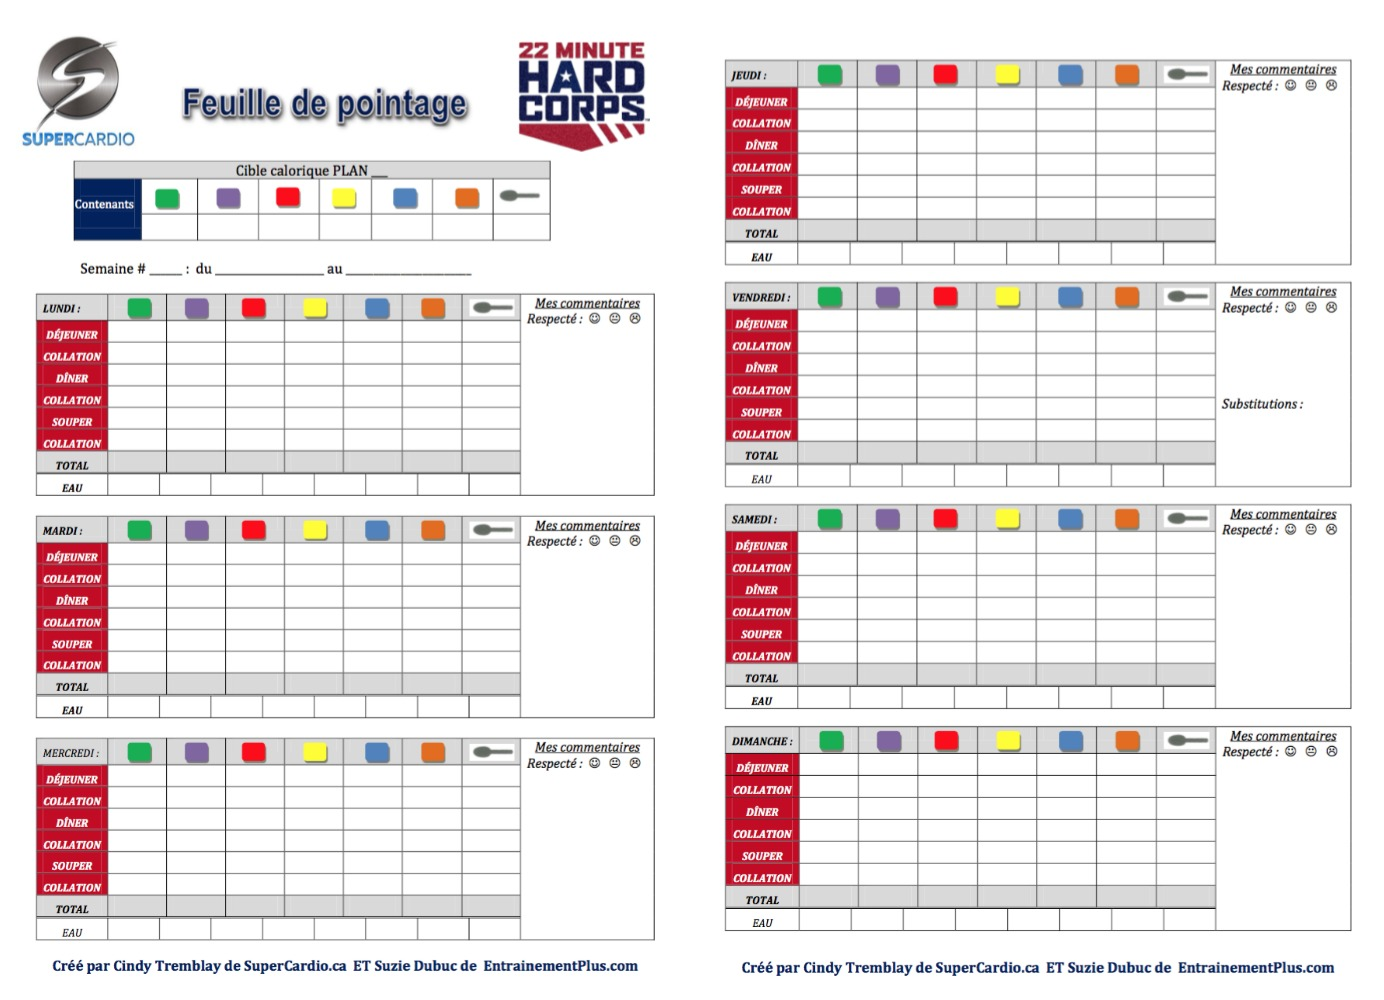 Feuille de pointage 22 Minute Hard Corps